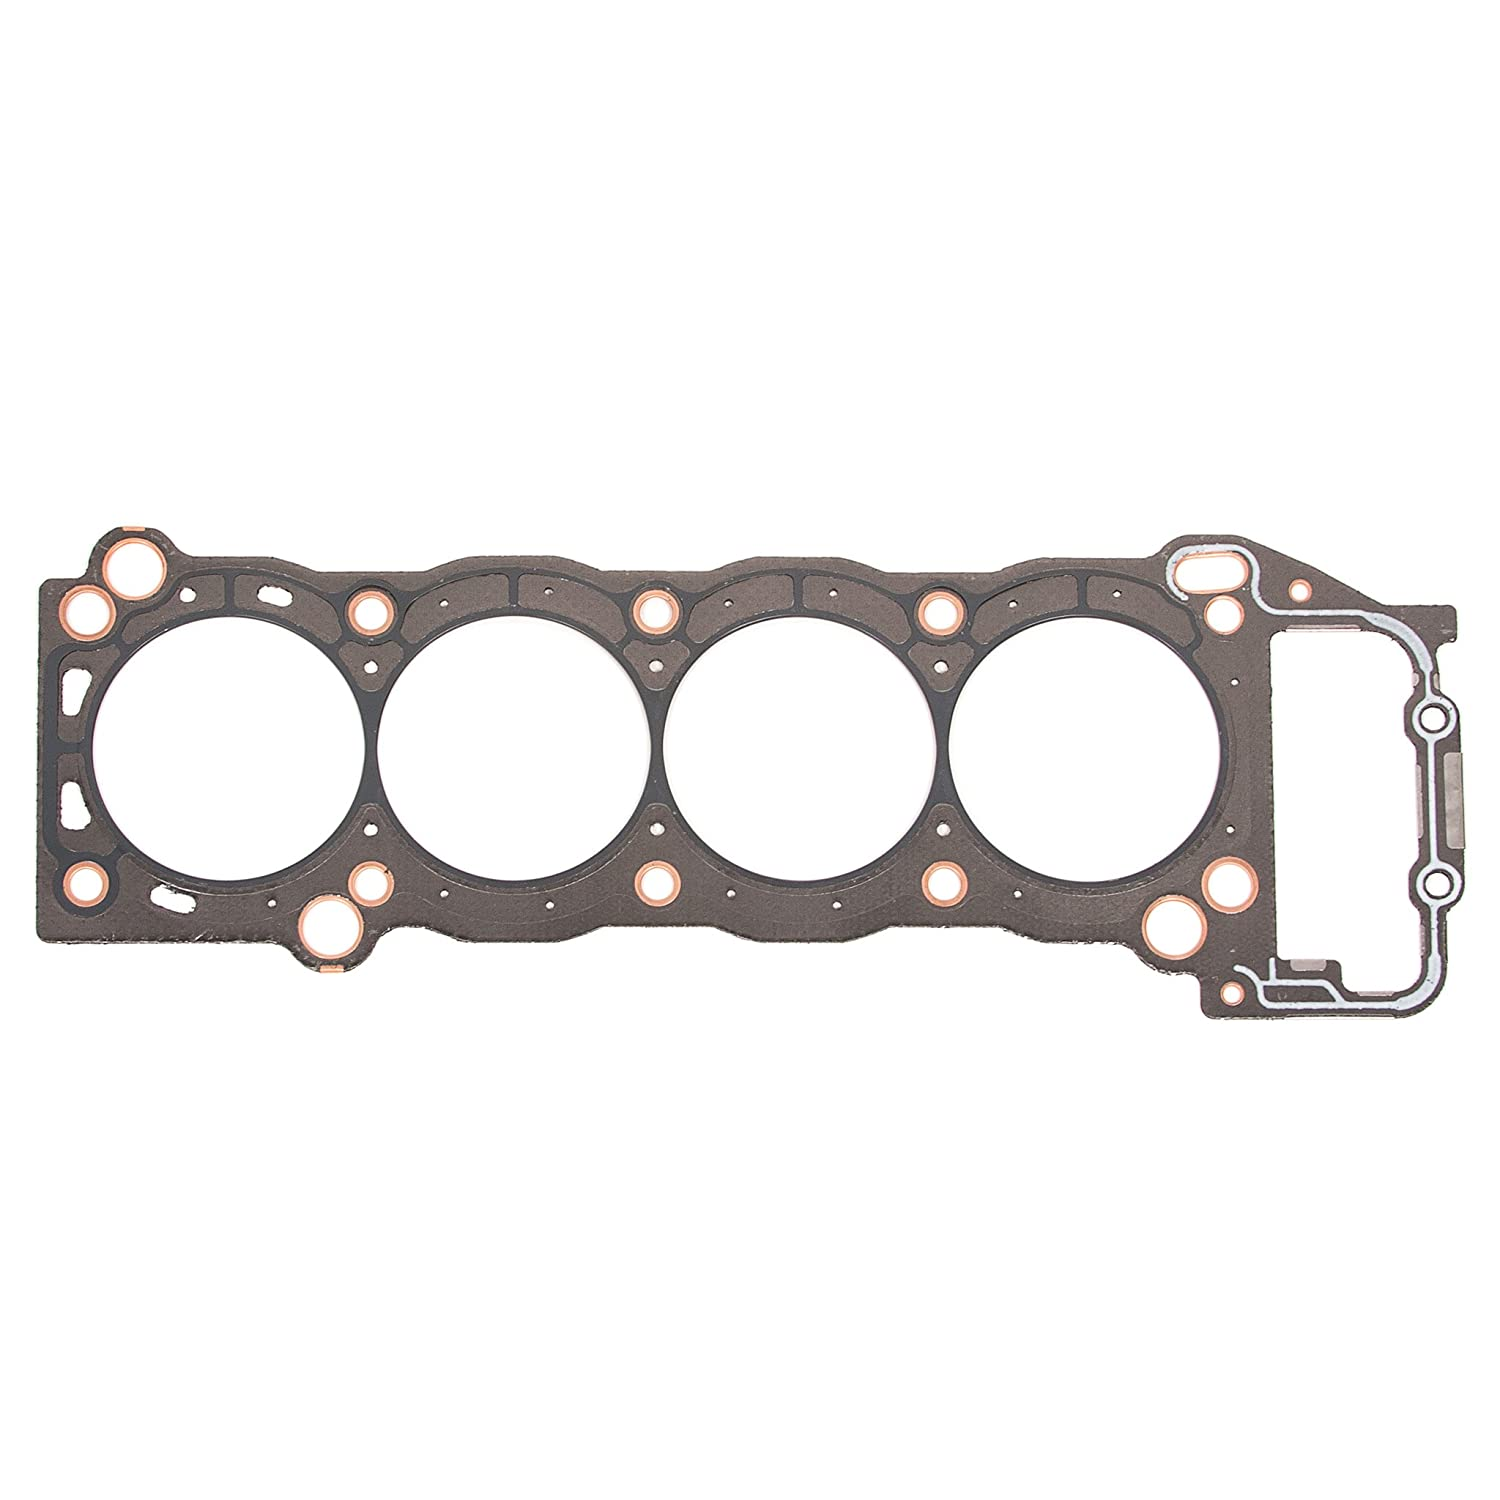 Timing Chain Kit Oil Pump Water Pump For 95-04 TOYOTA TACOMA 2.4L 2RZFE